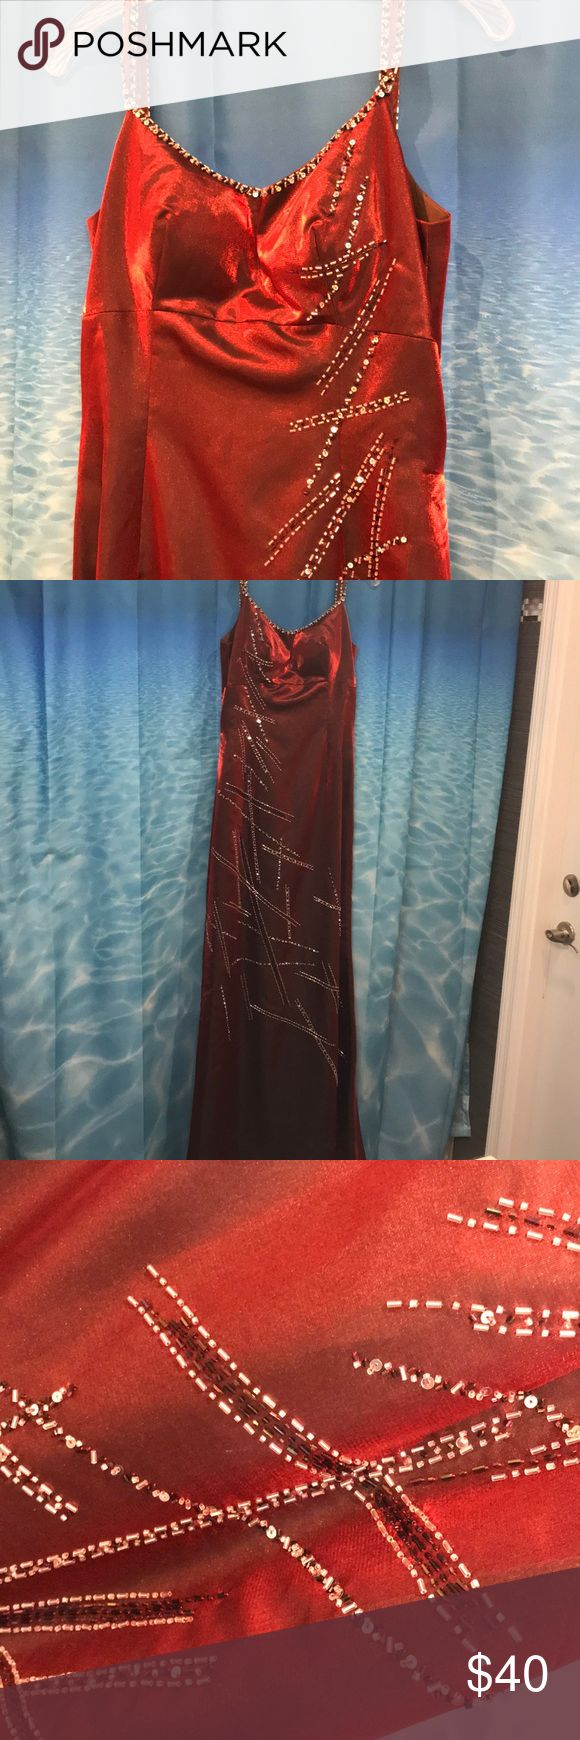 "Red Metallic Formal Long Dress with small Train Very stunning red metallic long dress. Gorgeous beading. Size 10. Front of dress 61"" long from top of shoulder. Back of dress 71"" long from shoulder. EUC Bella Formals by Venus Dresses Prom"